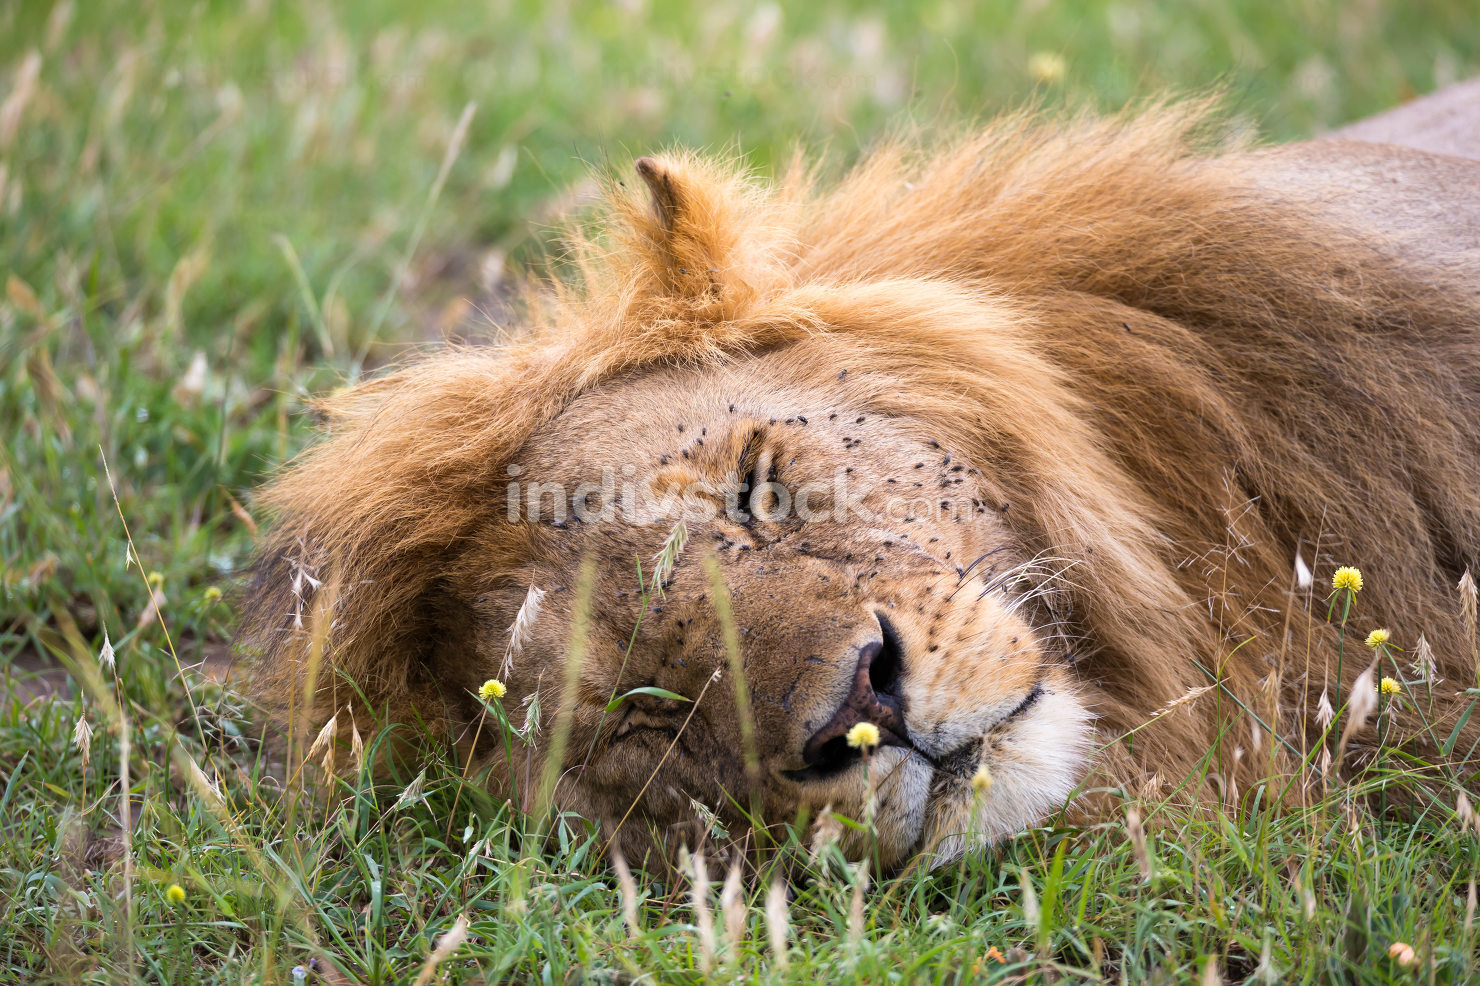 A big lion sleeps in the grass of the Kenyan savannah